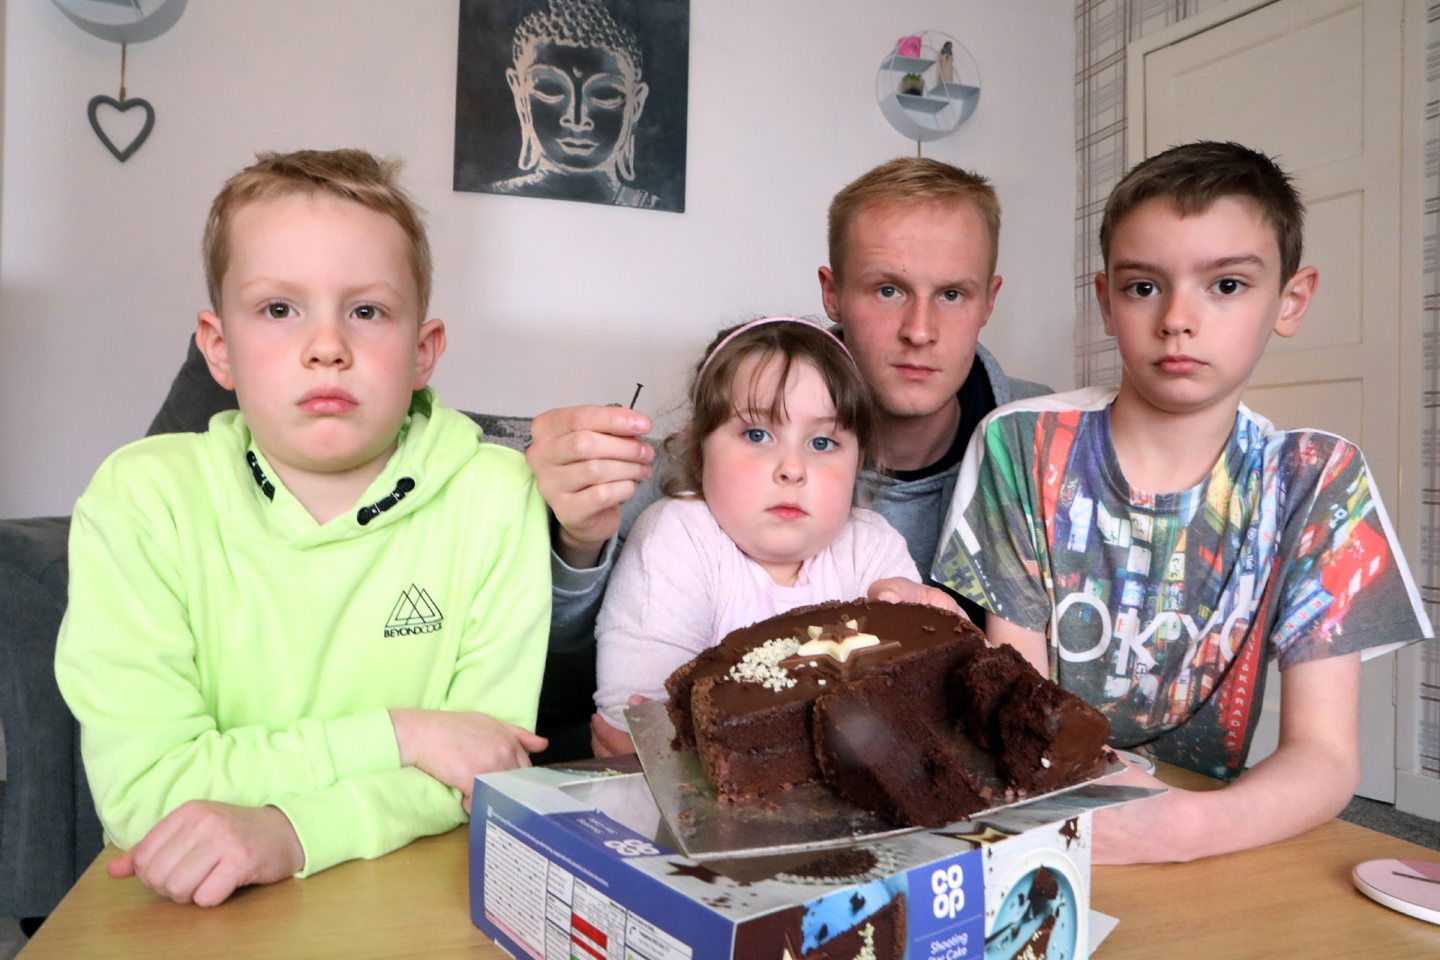 Jack Winstanley (7) , Olivia Watson (5) & Harry Winstanley (10),  when he discovered a nail inside the Co-op cake.